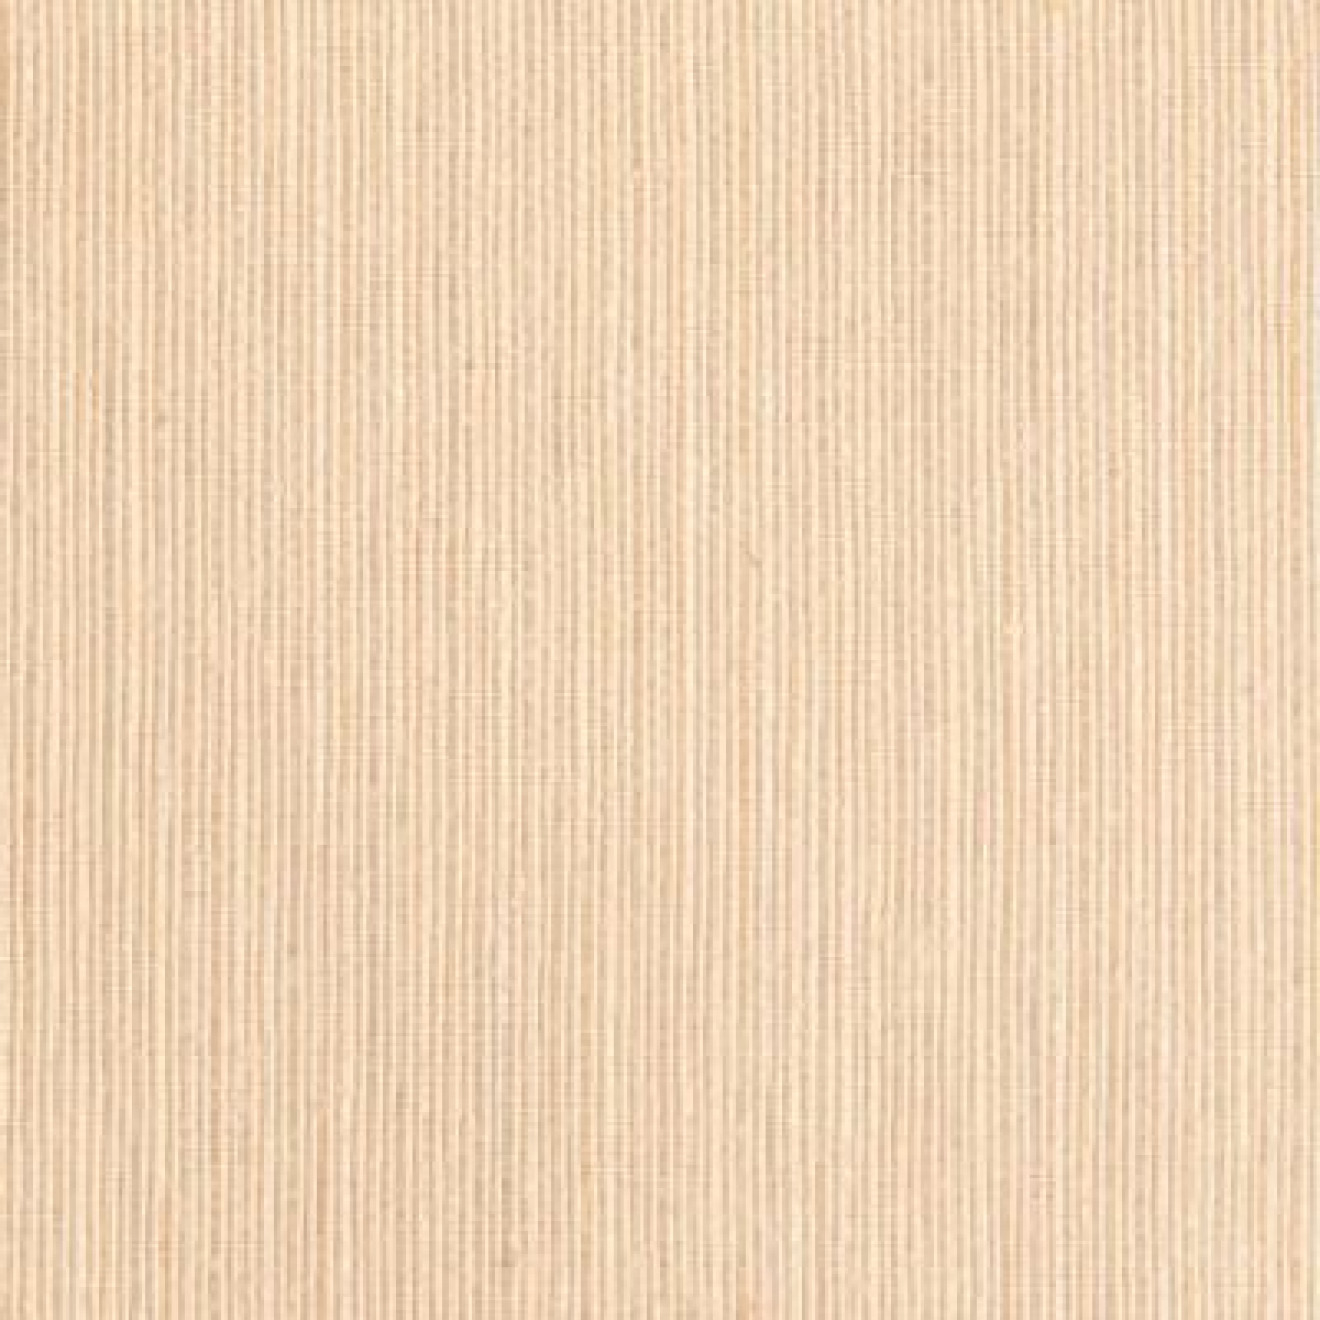 Rolle - Acrylstoff Loneta Color 106